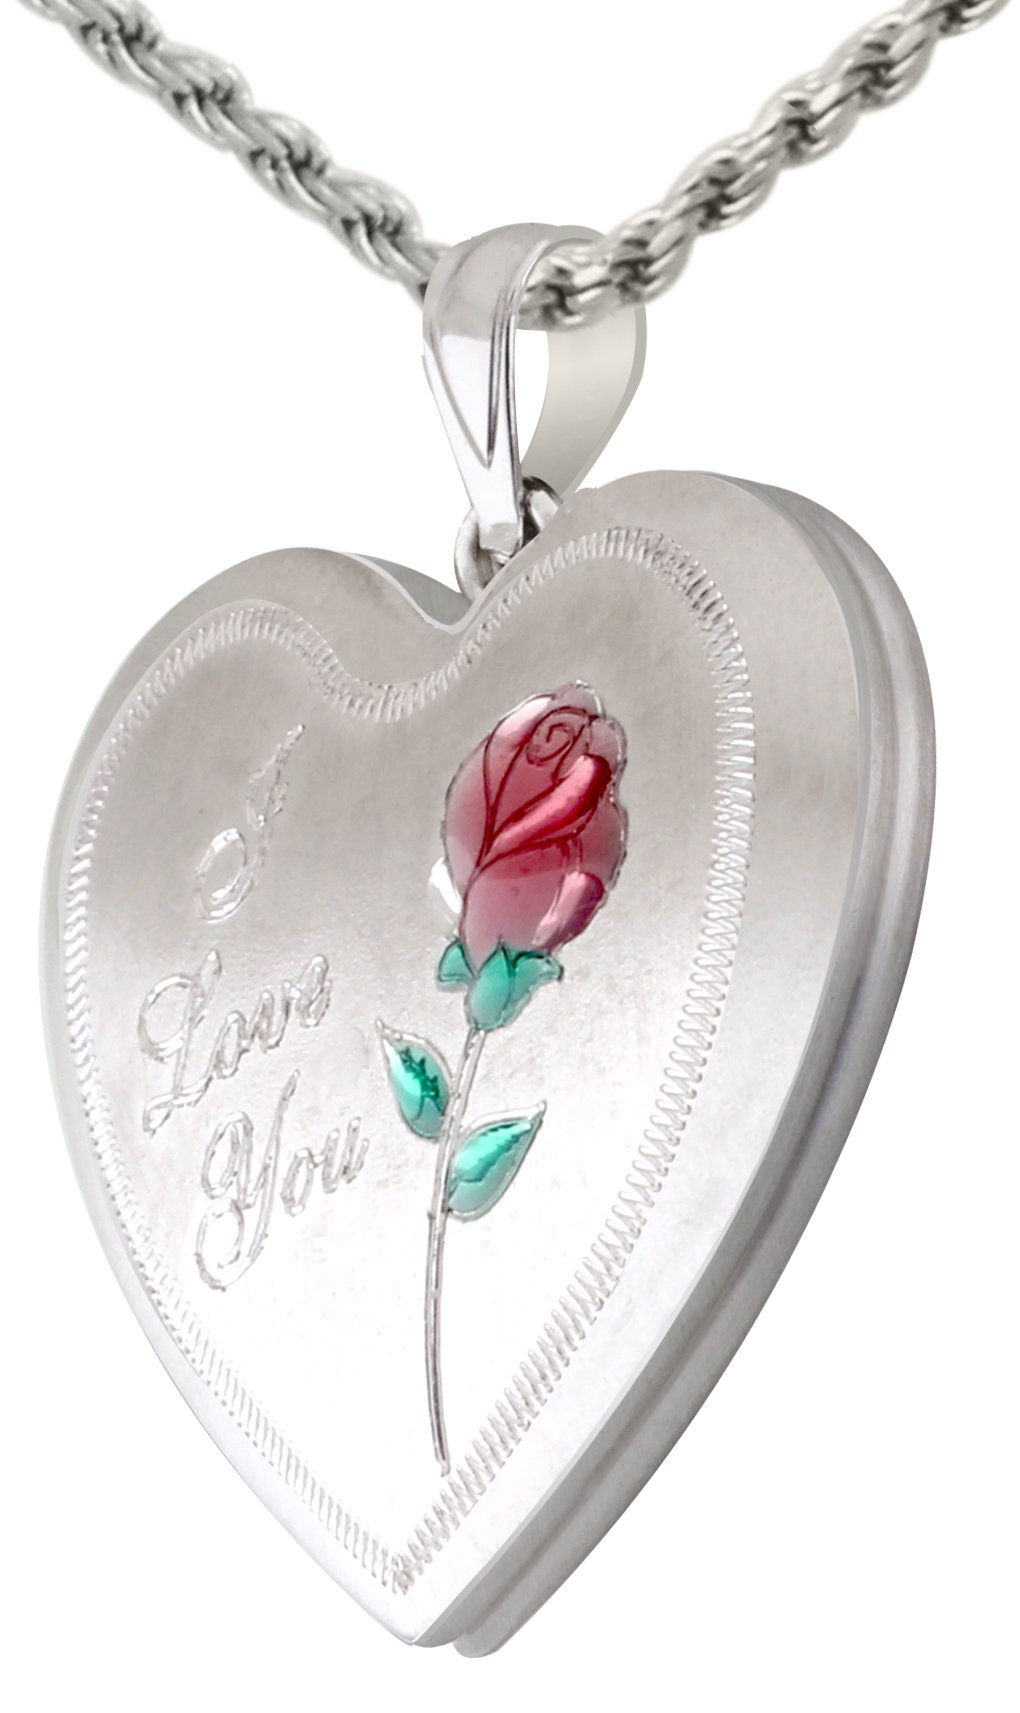 0.925 Sterling Silver I Love You & Rose 2 Photo Heart Locket Pendant Necklace